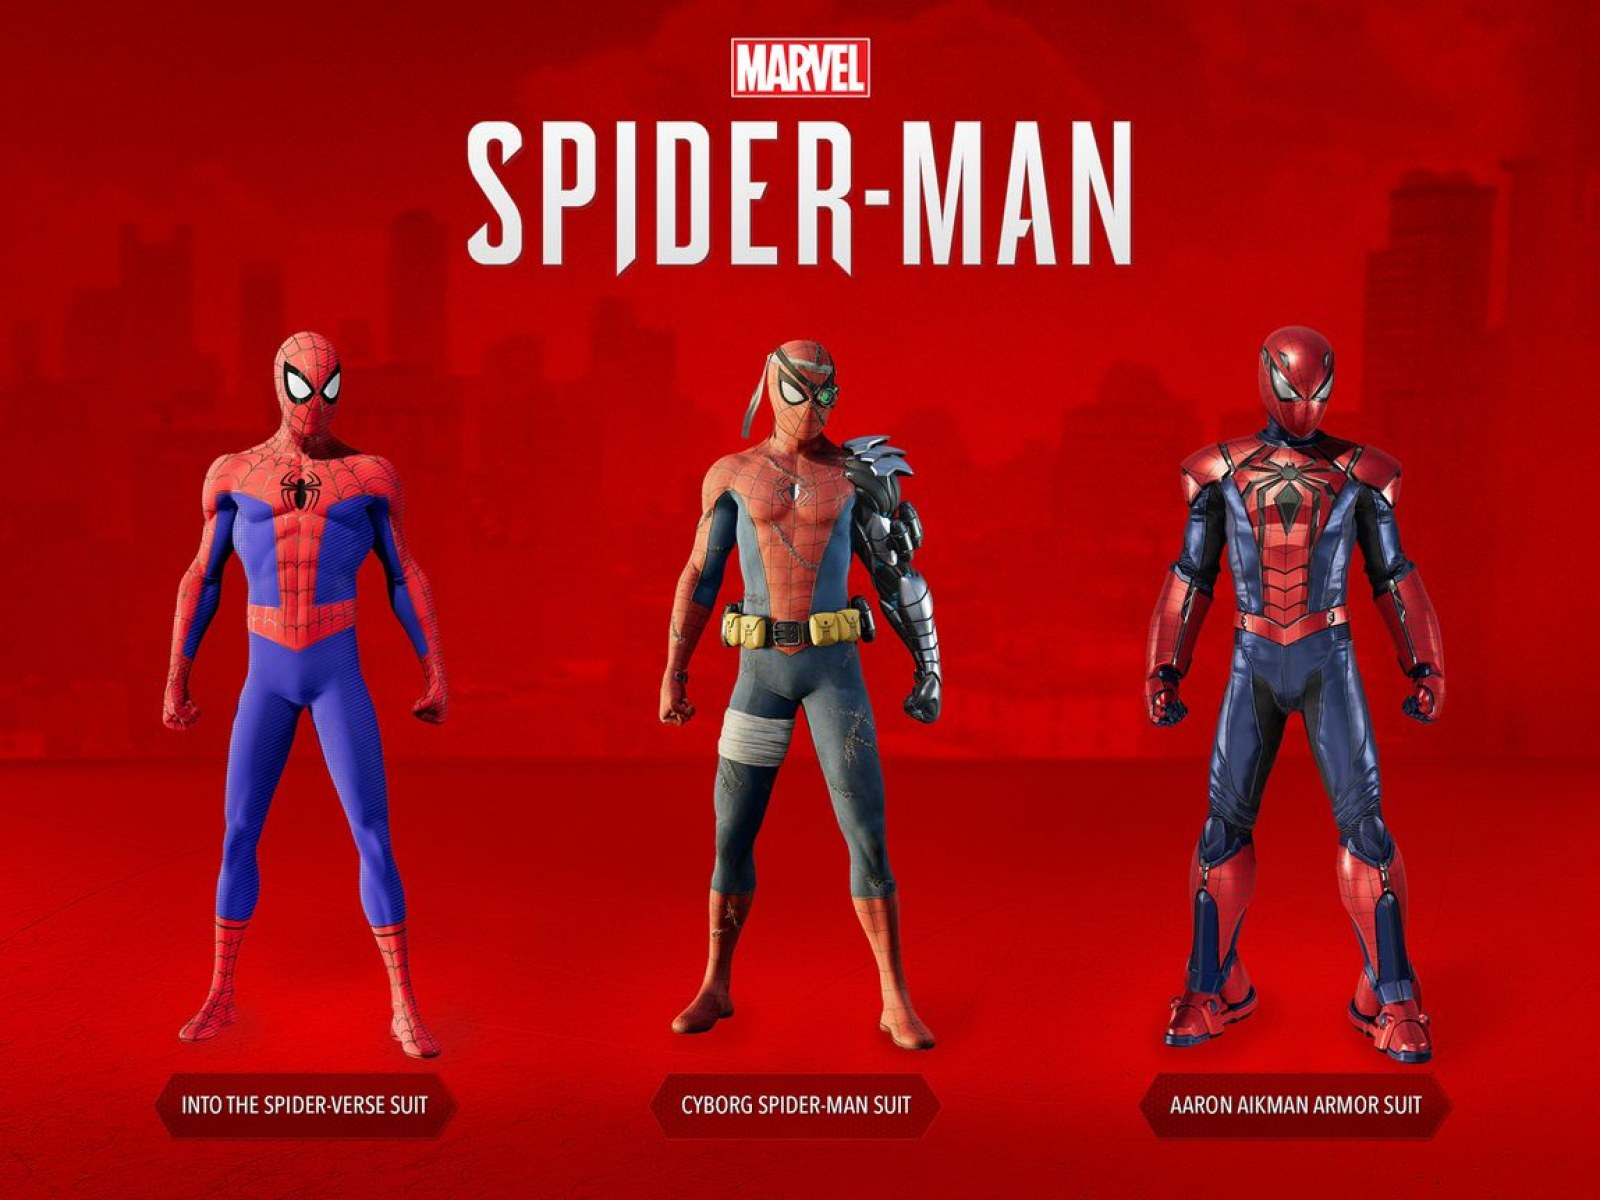 Marvel's Spider-Man' Silver Lining DLC Release Date and Suits Revealed